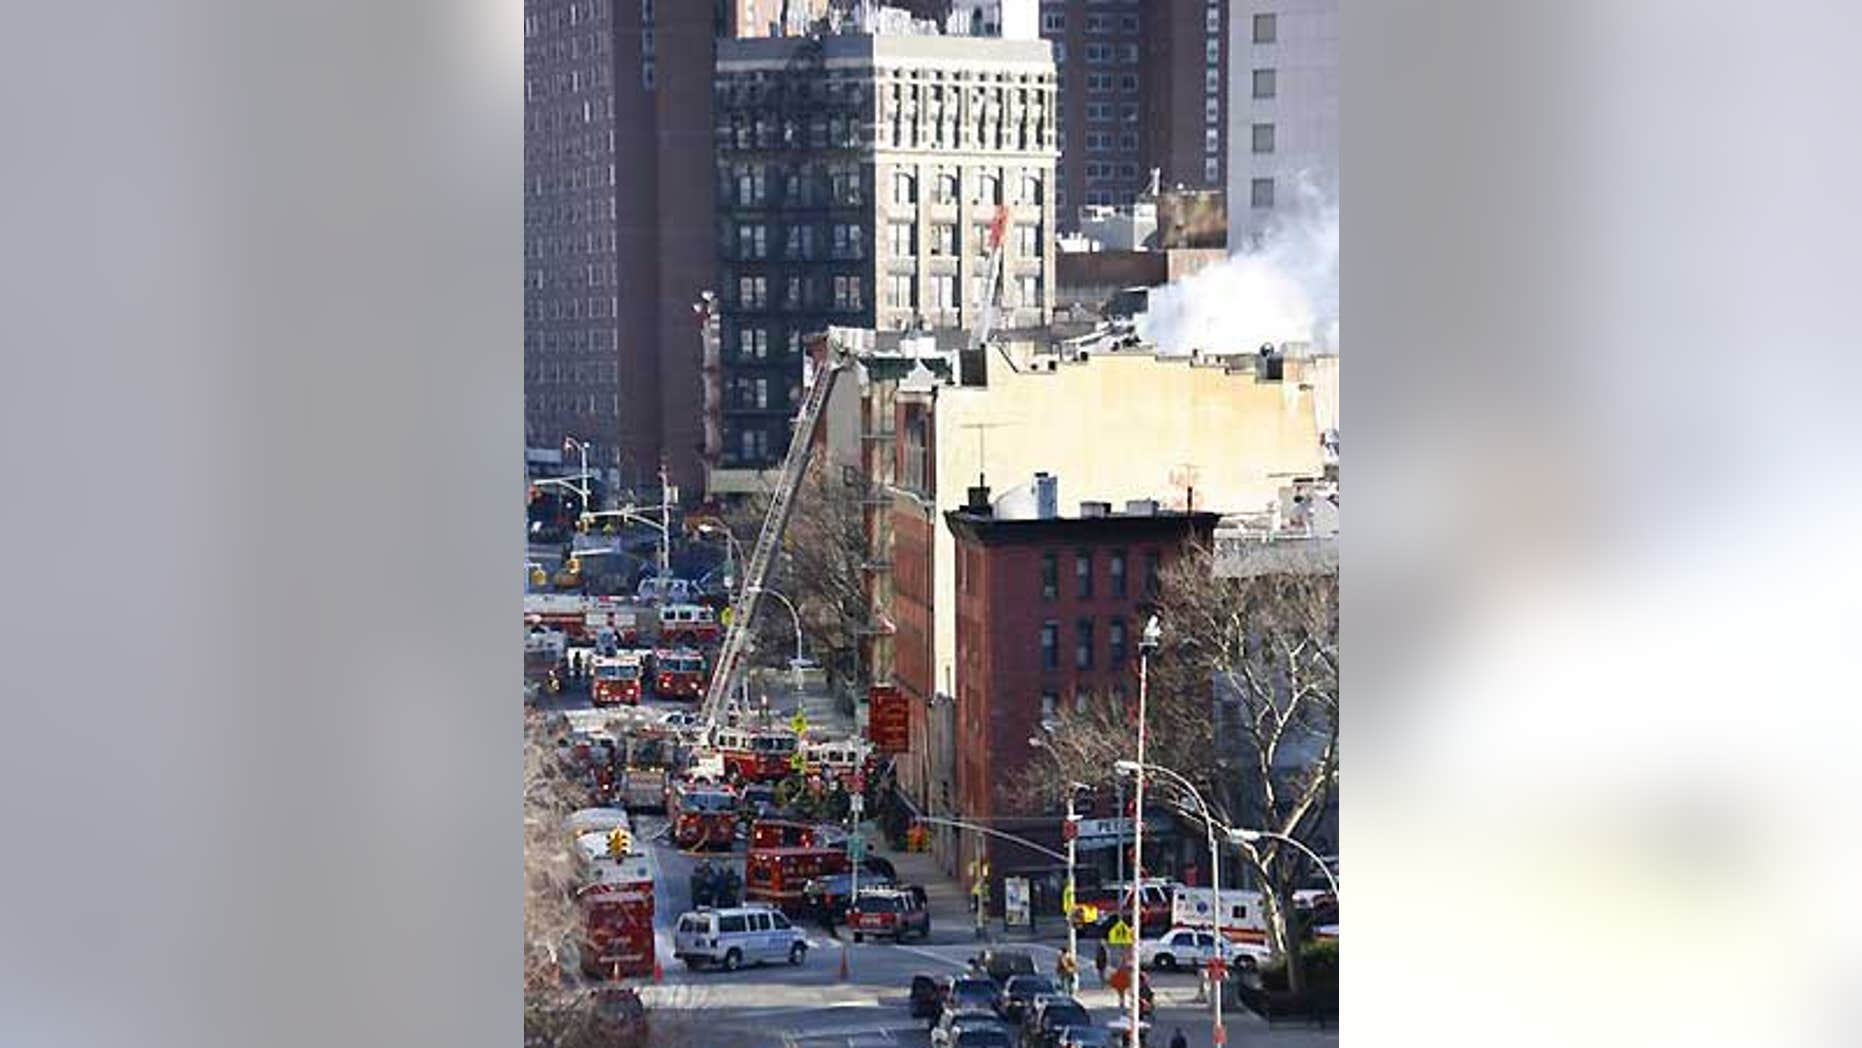 Feb. 24: A blaze breaks out at an apartment in New York City's Chinatown section, leaving 1 dead and dozens injured.